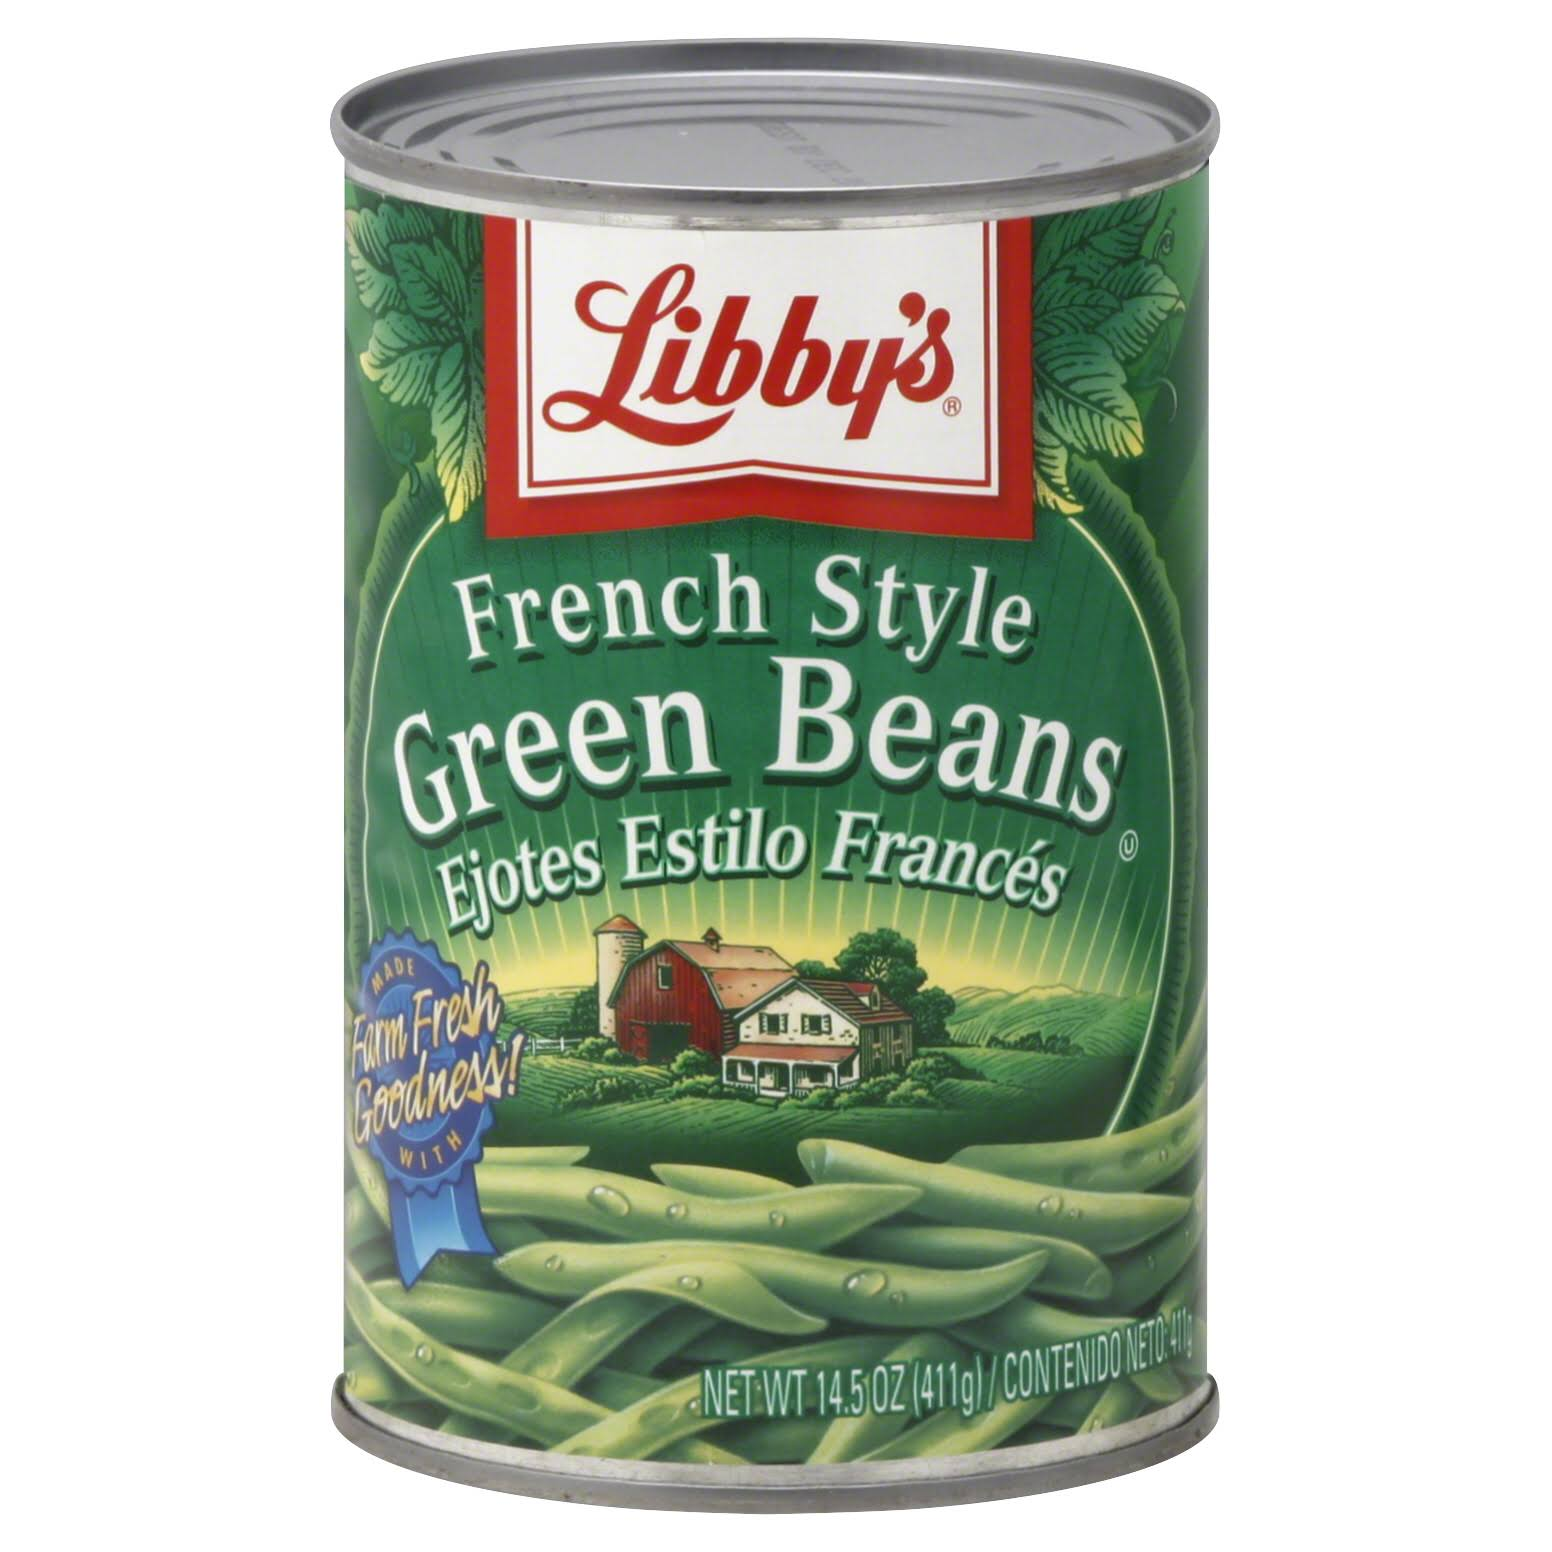 Libby's French Style Green Beans - 14.5oz